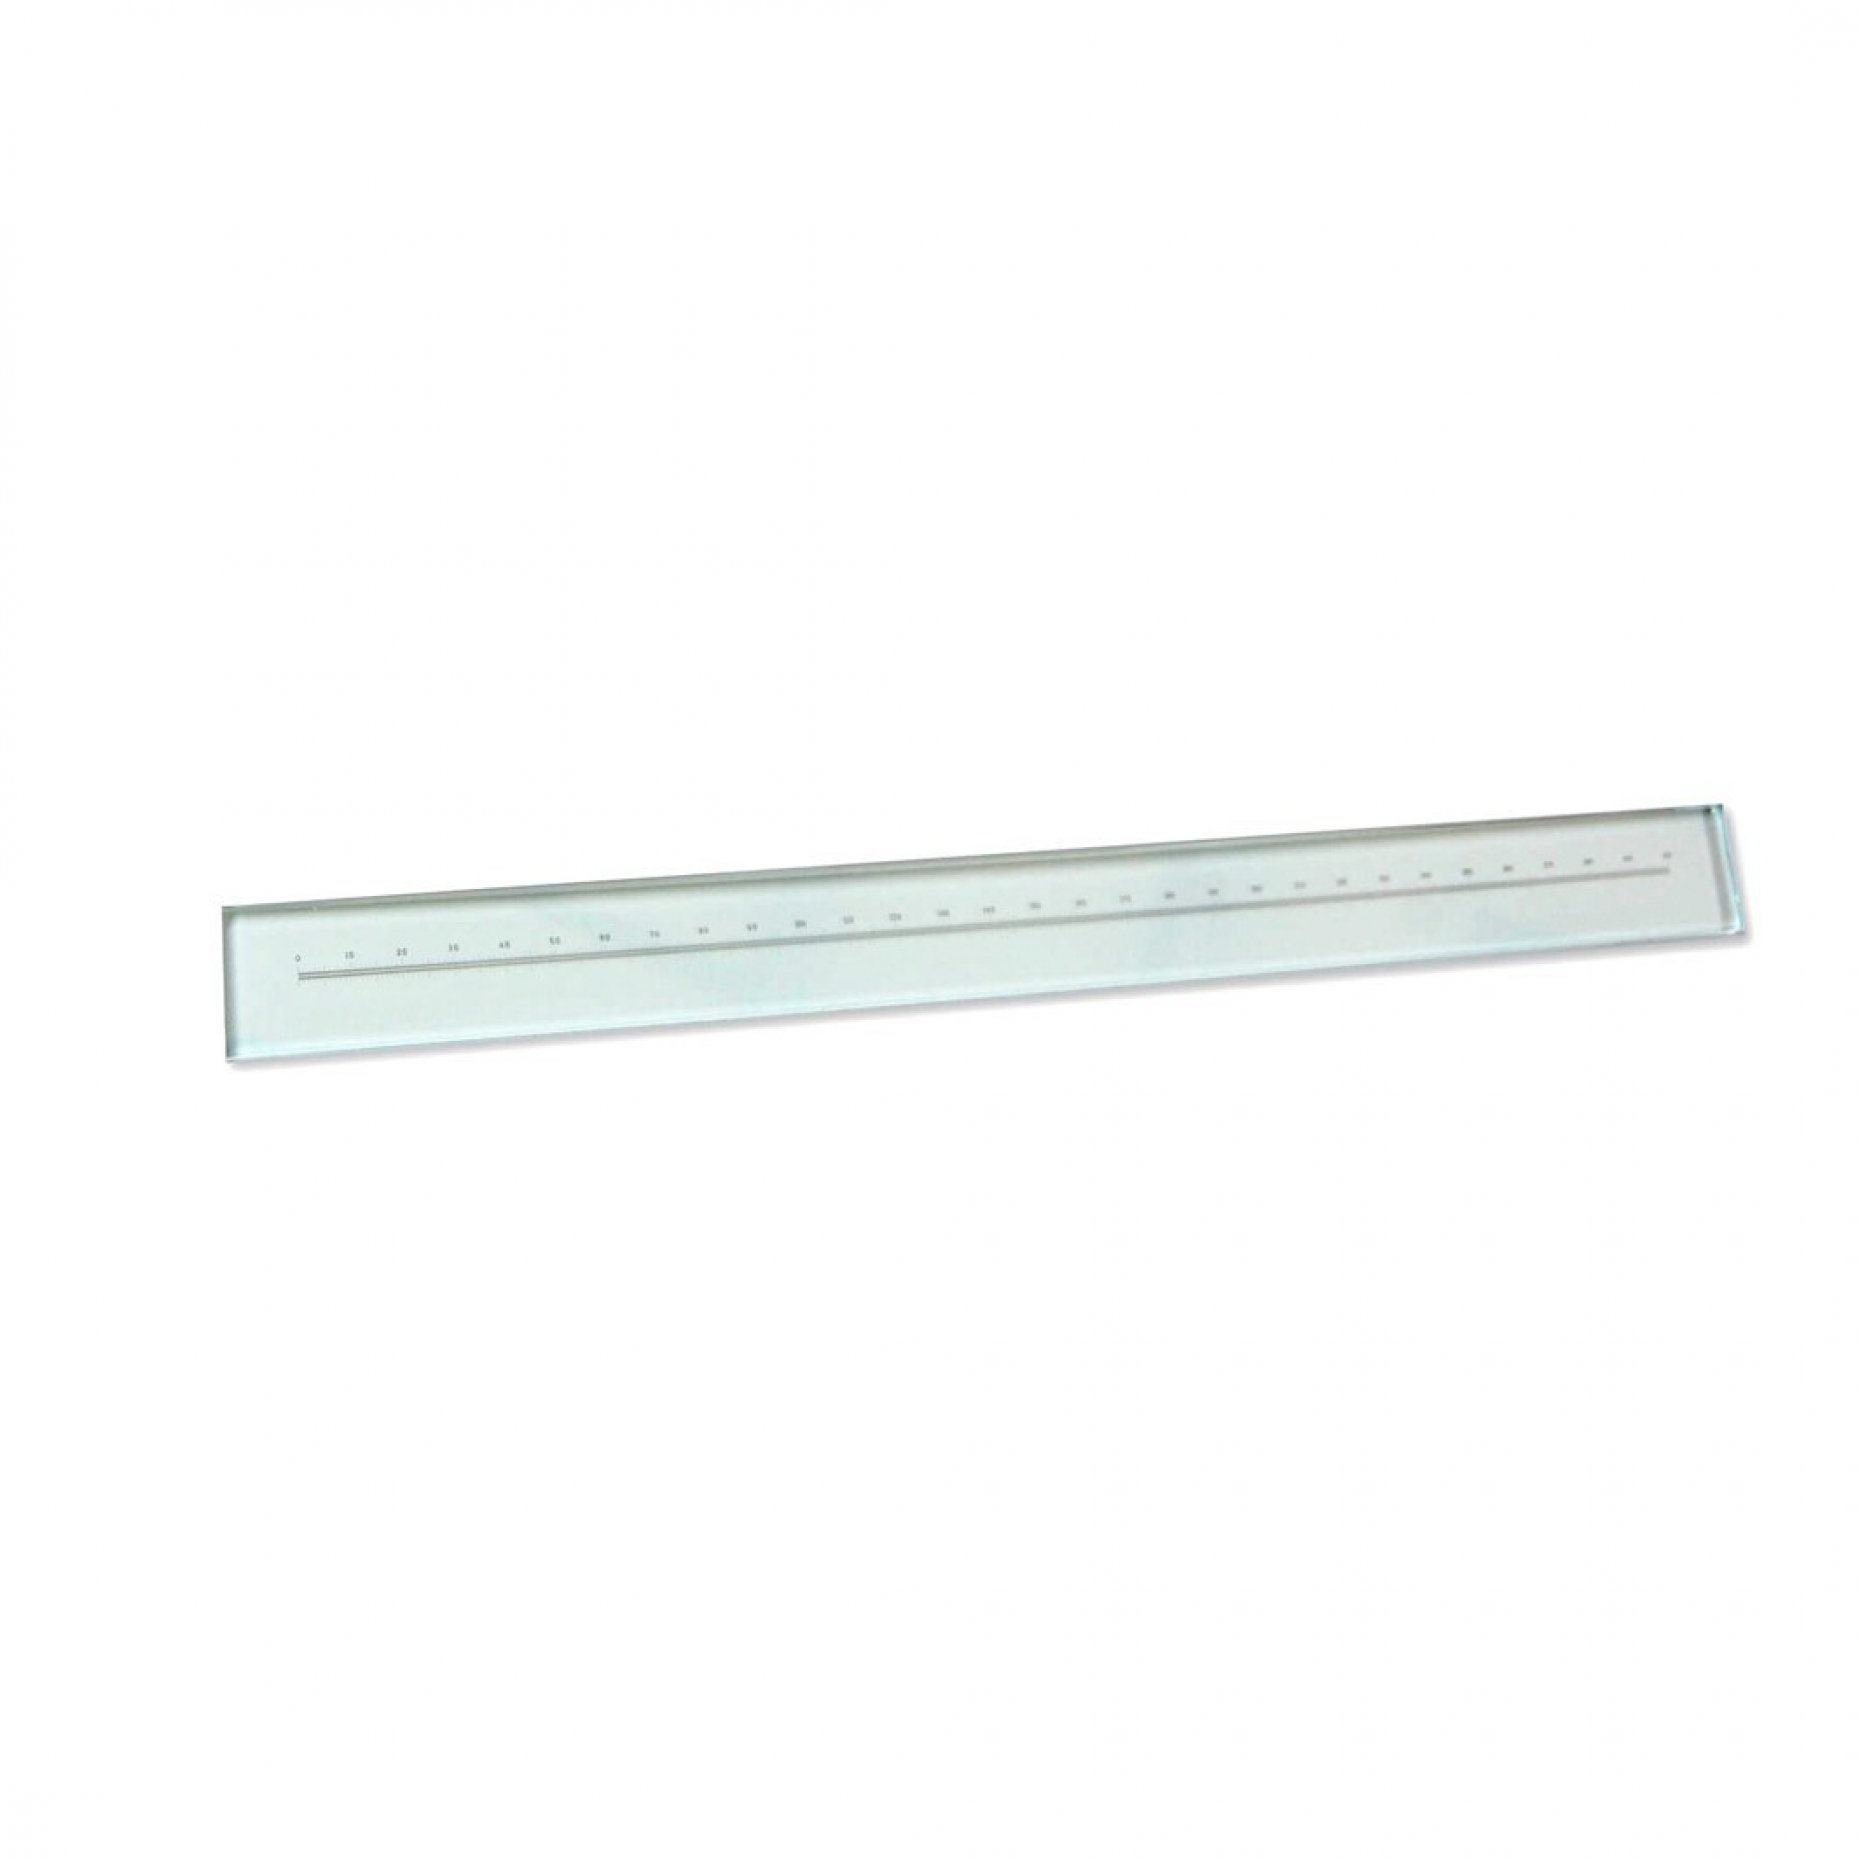 PCA705 Replacement Scale 500mm/0.1mm